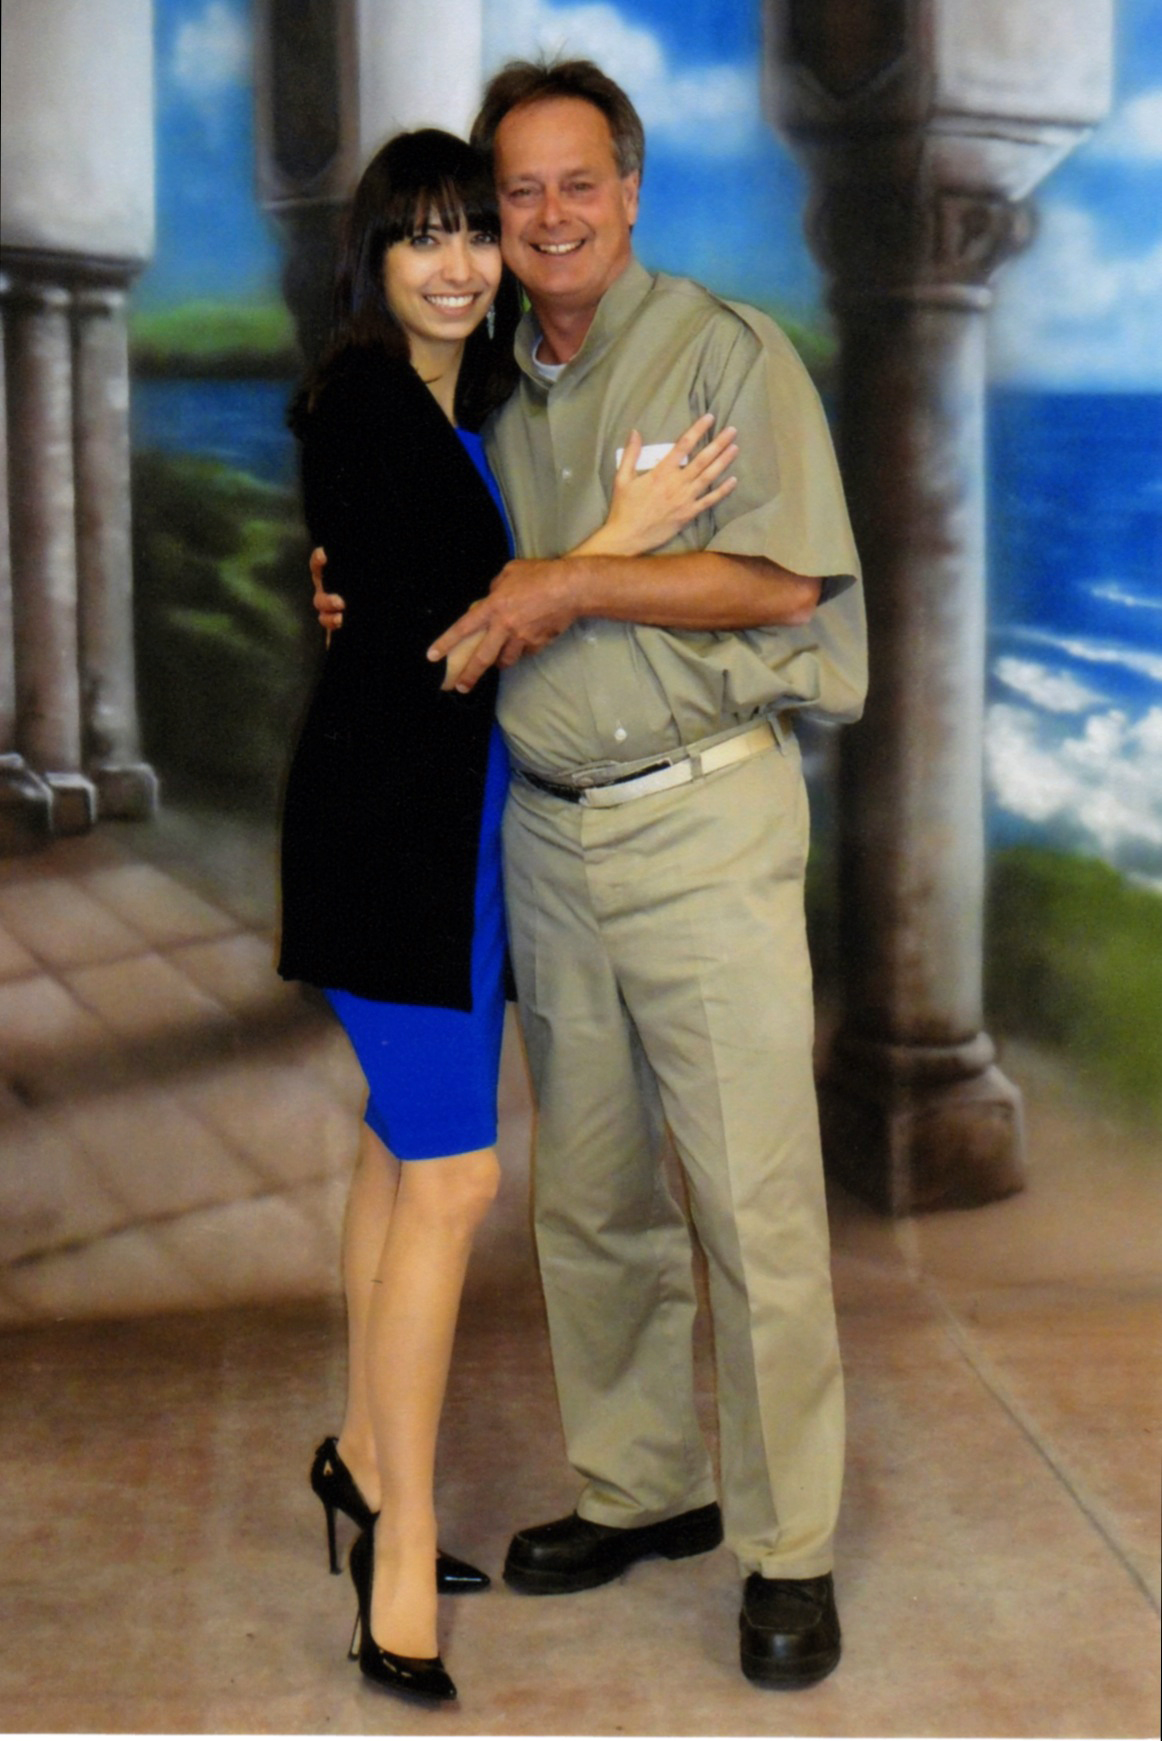 Marc and Jodie Emery, December 1, 2012